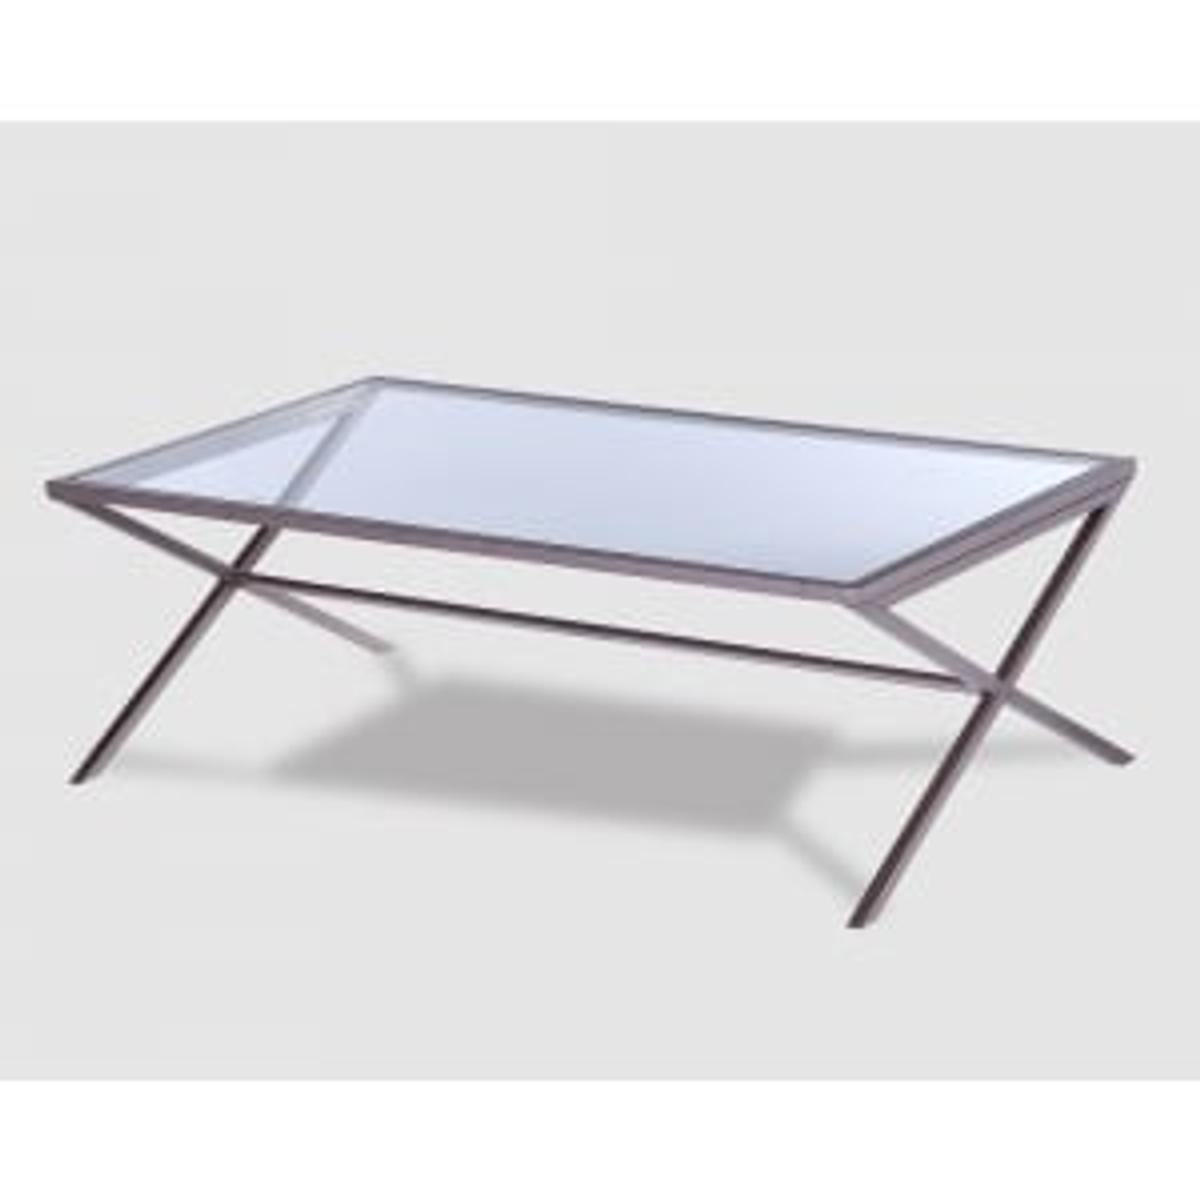 - Liang & Eimil Basso Bronze Coffee Table In Stafford Für £ 180,00